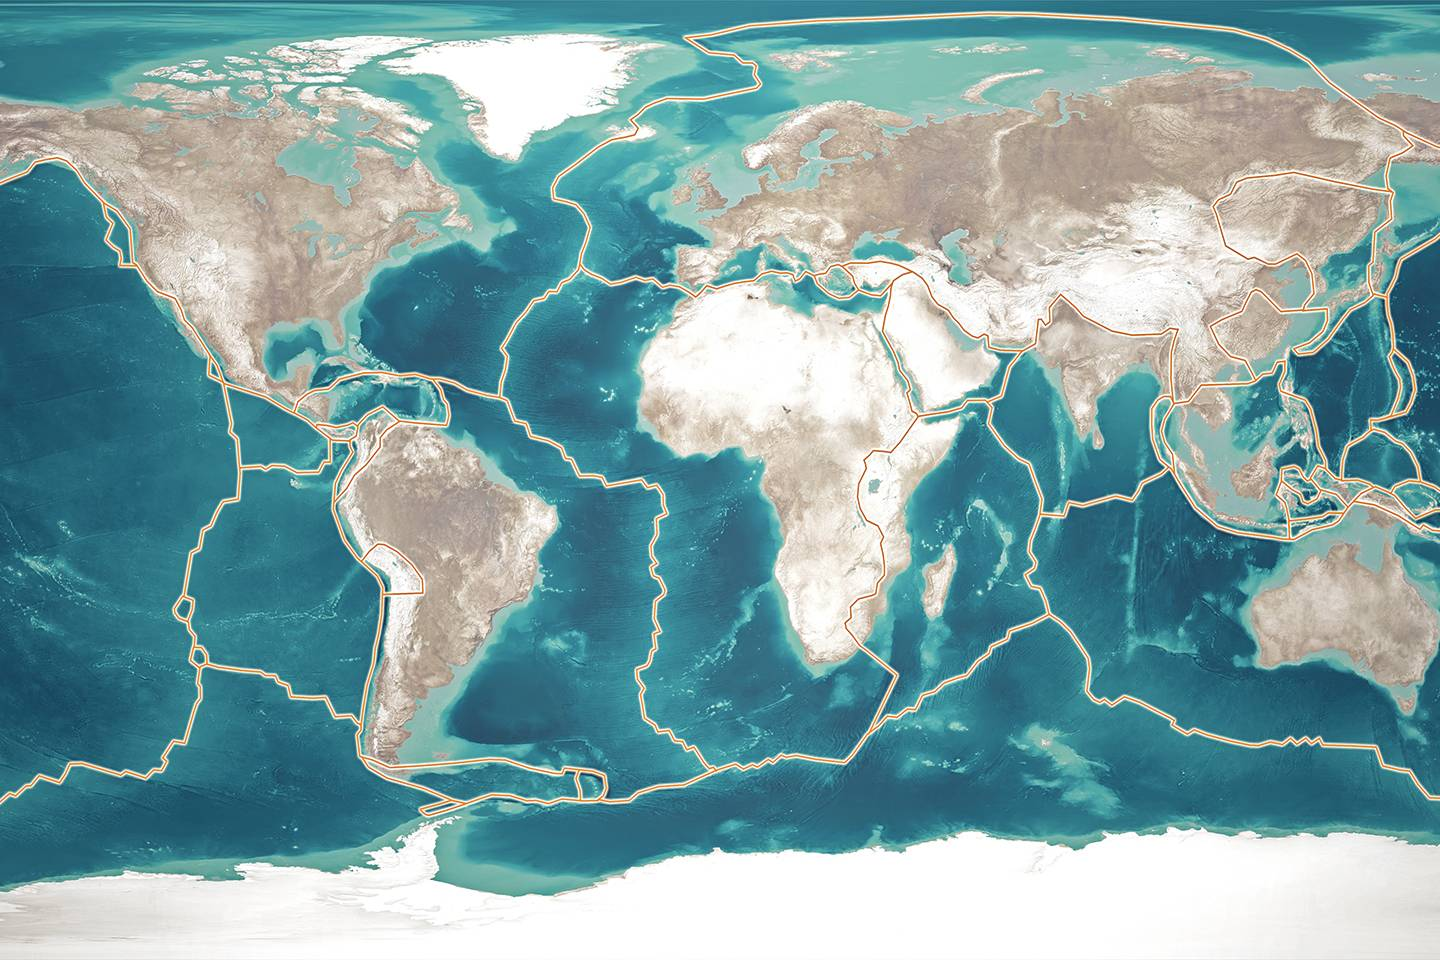 Researchers uncover 2.5 billion years of Earth's continents ...